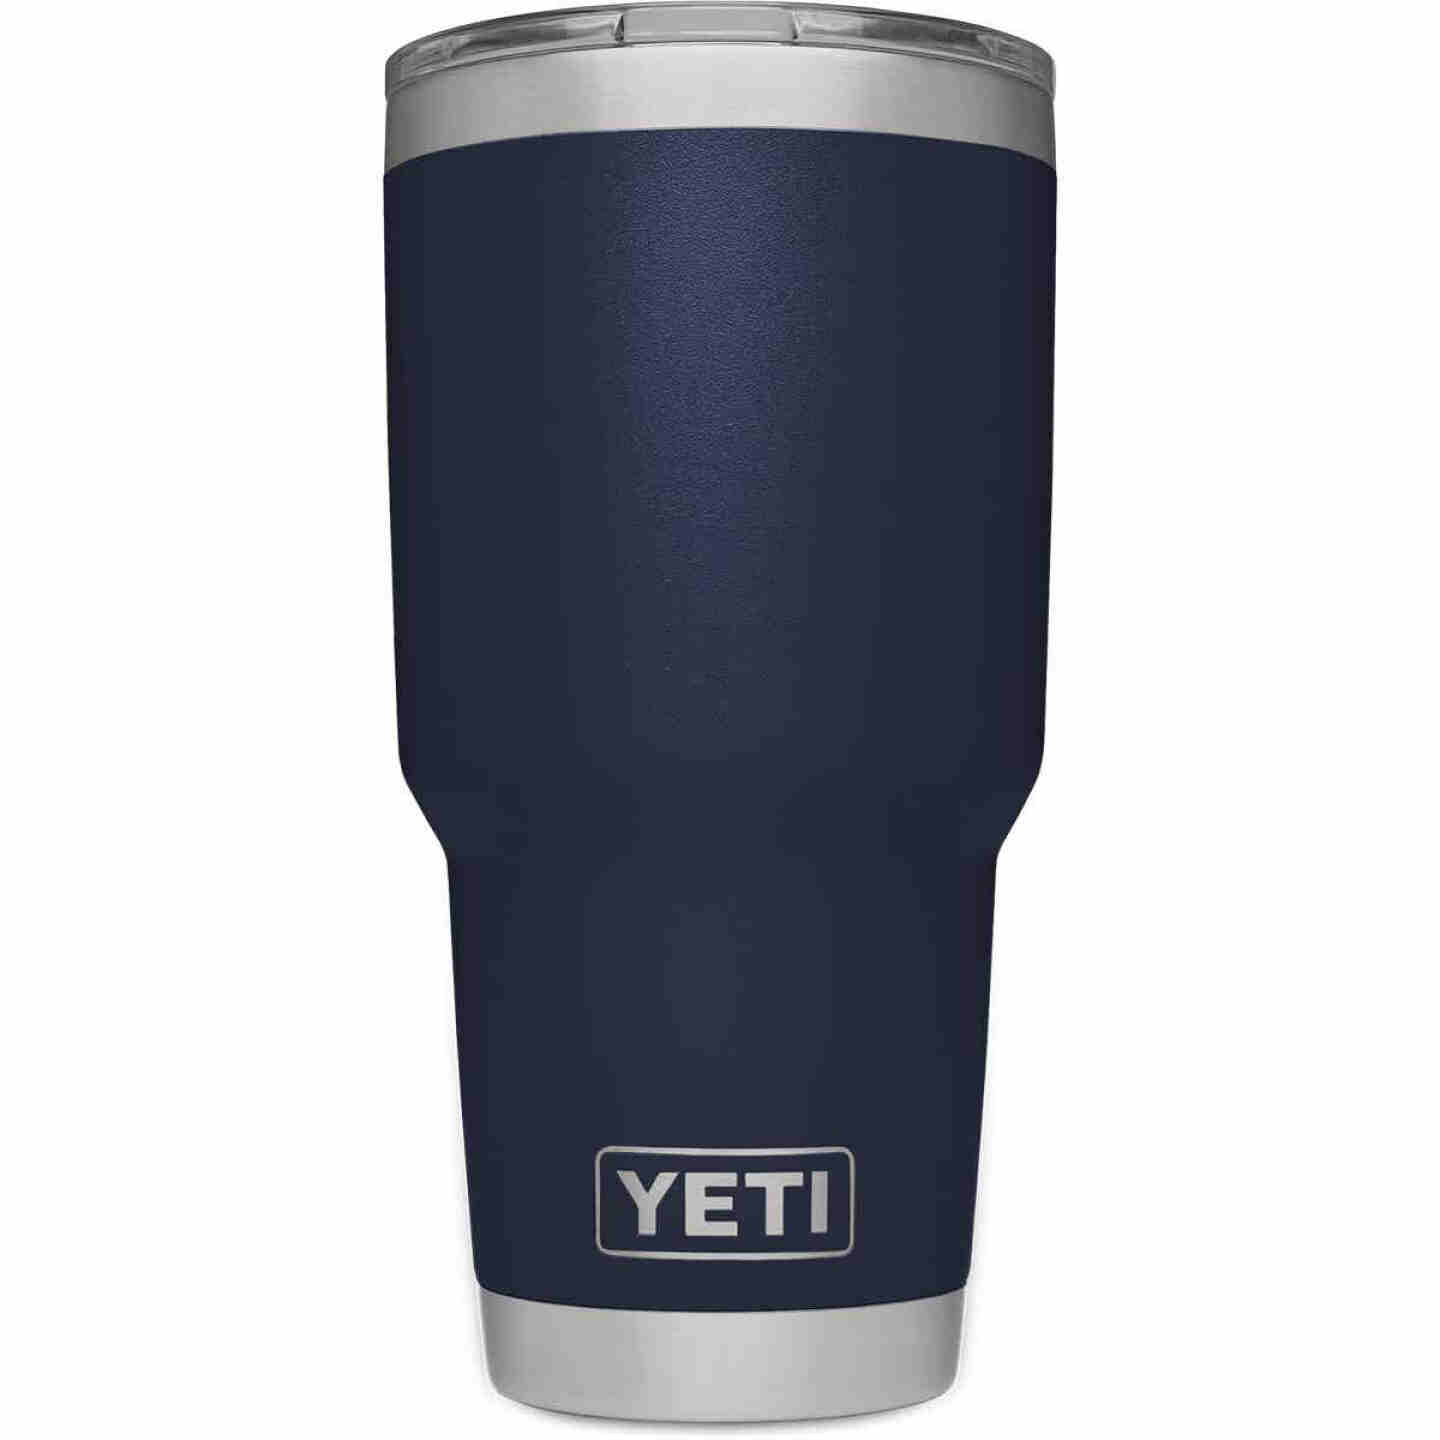 Yeti Rambler 30 Oz. Navy Blue Stainless Steel Insulated Tumbler with MagSlider Lid Image 3